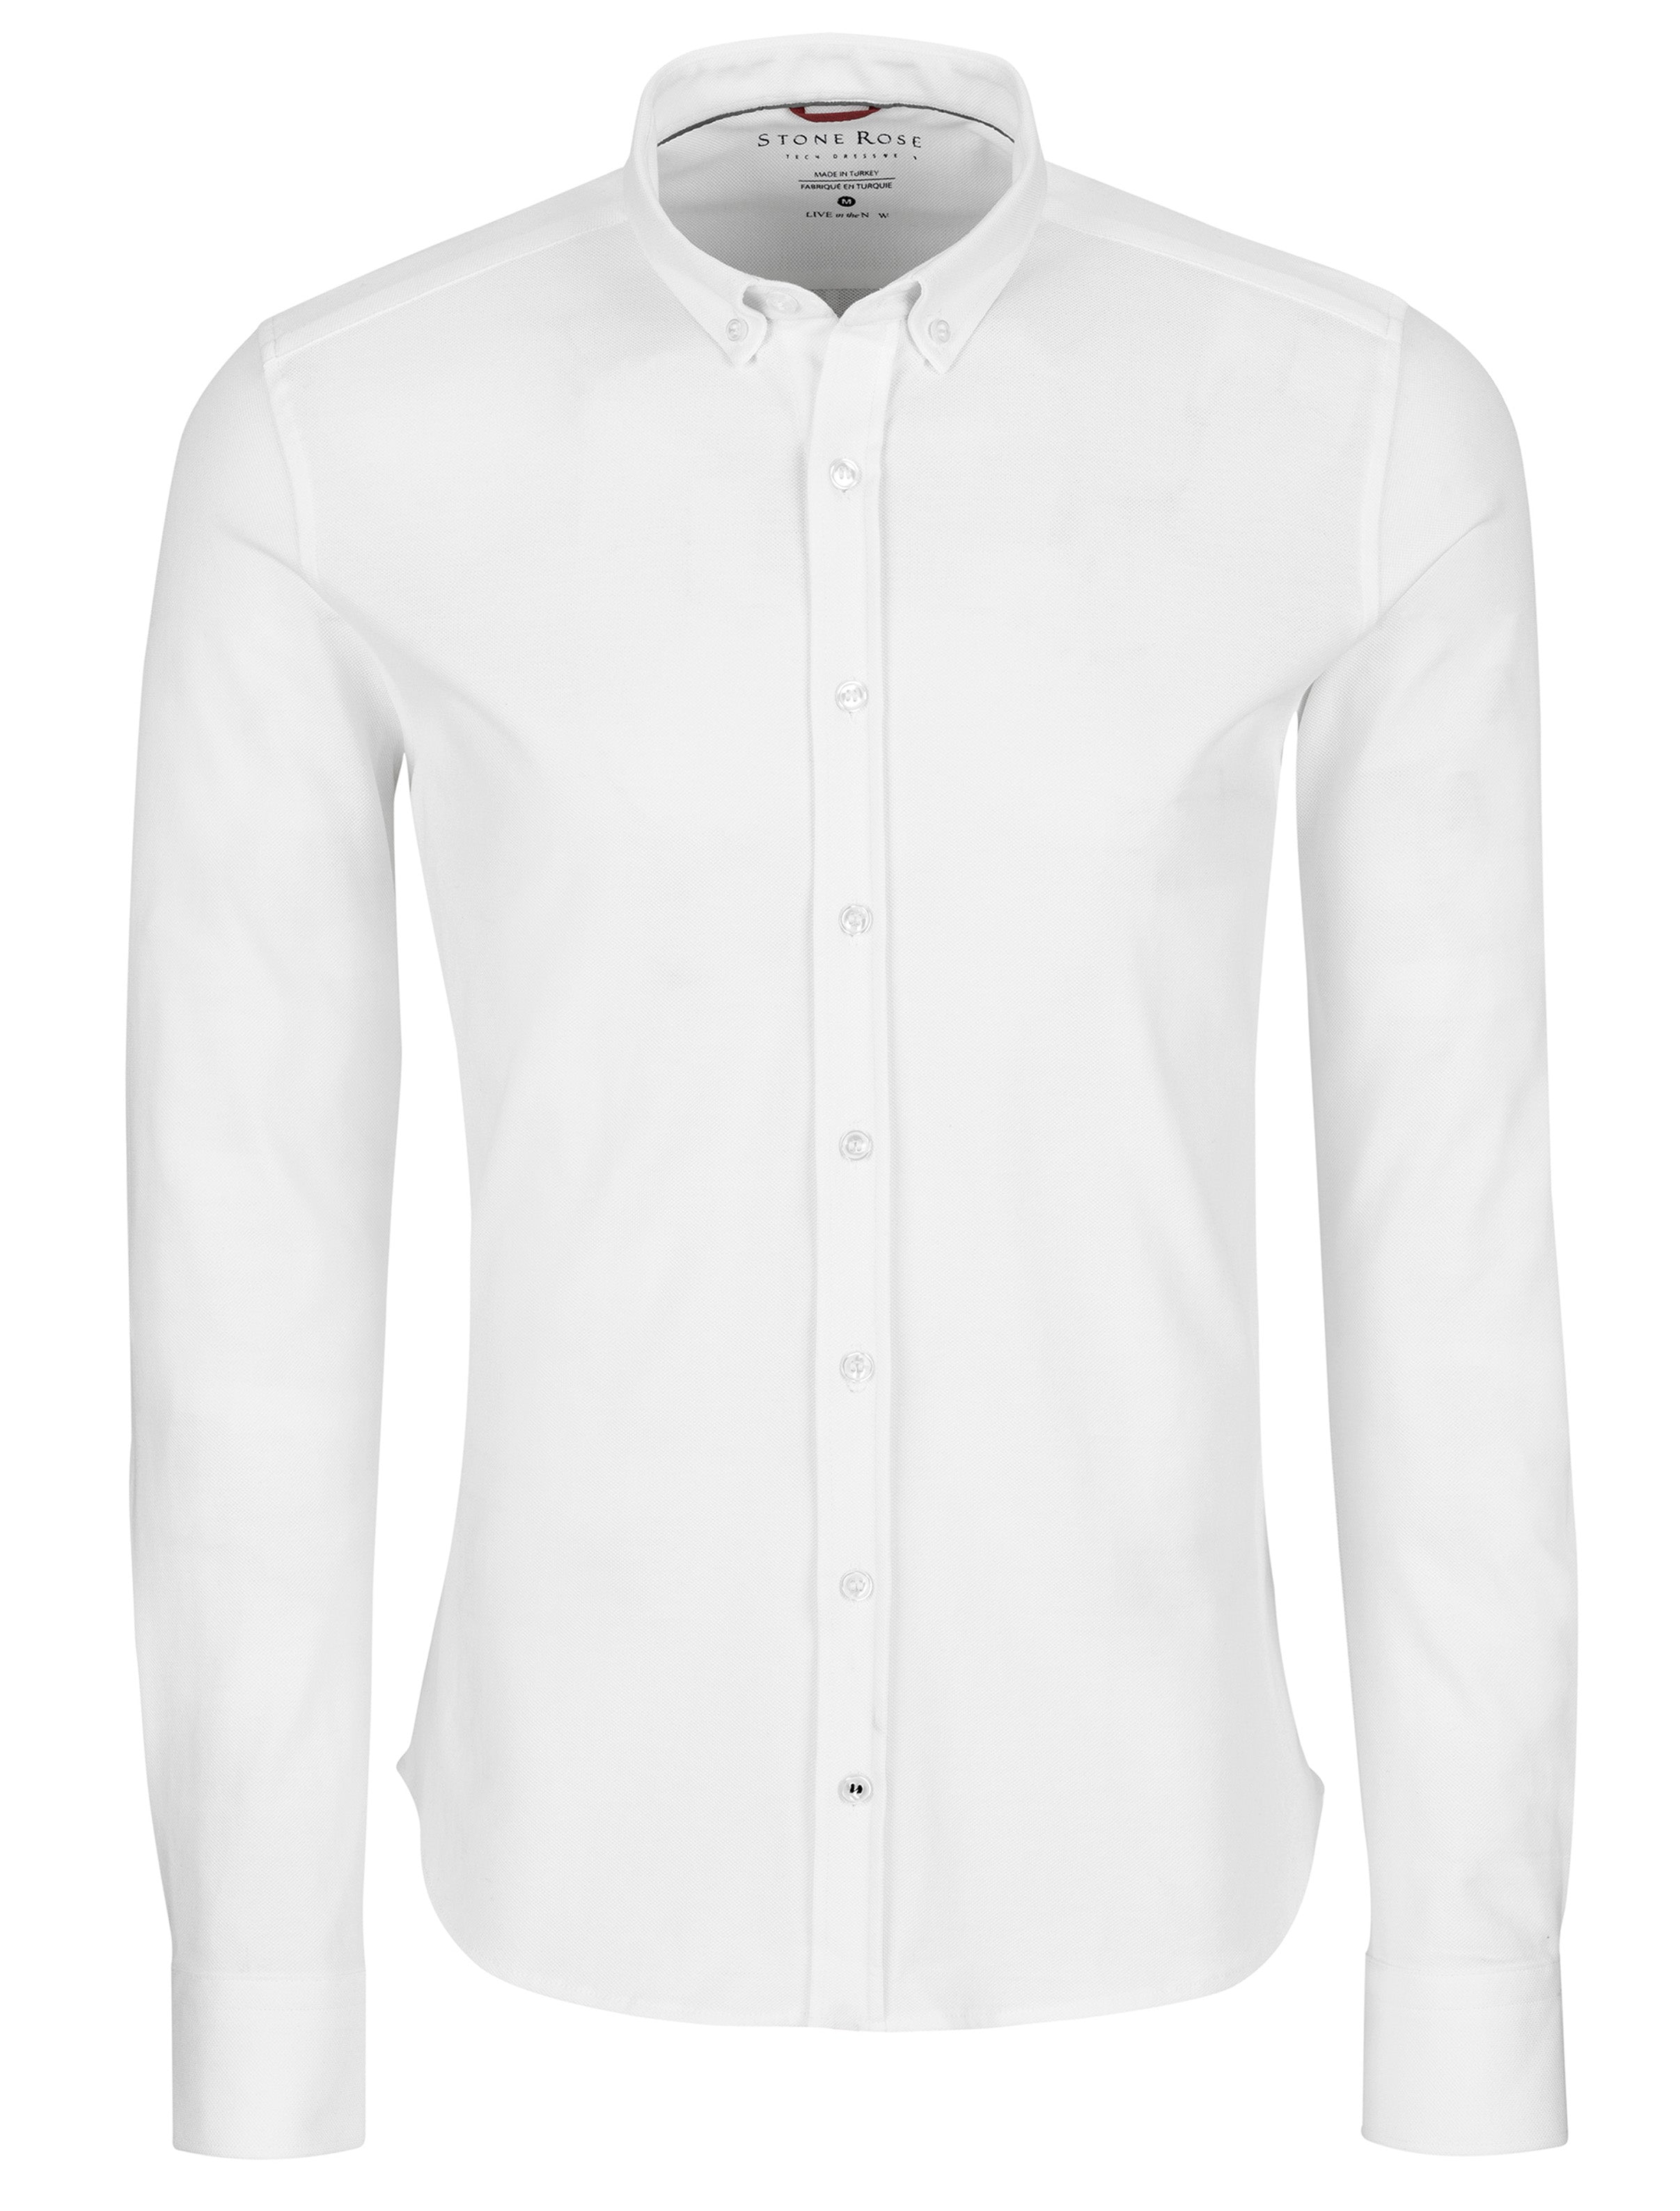 White Performance Pique Solid Knit Long Sleeve Shirt